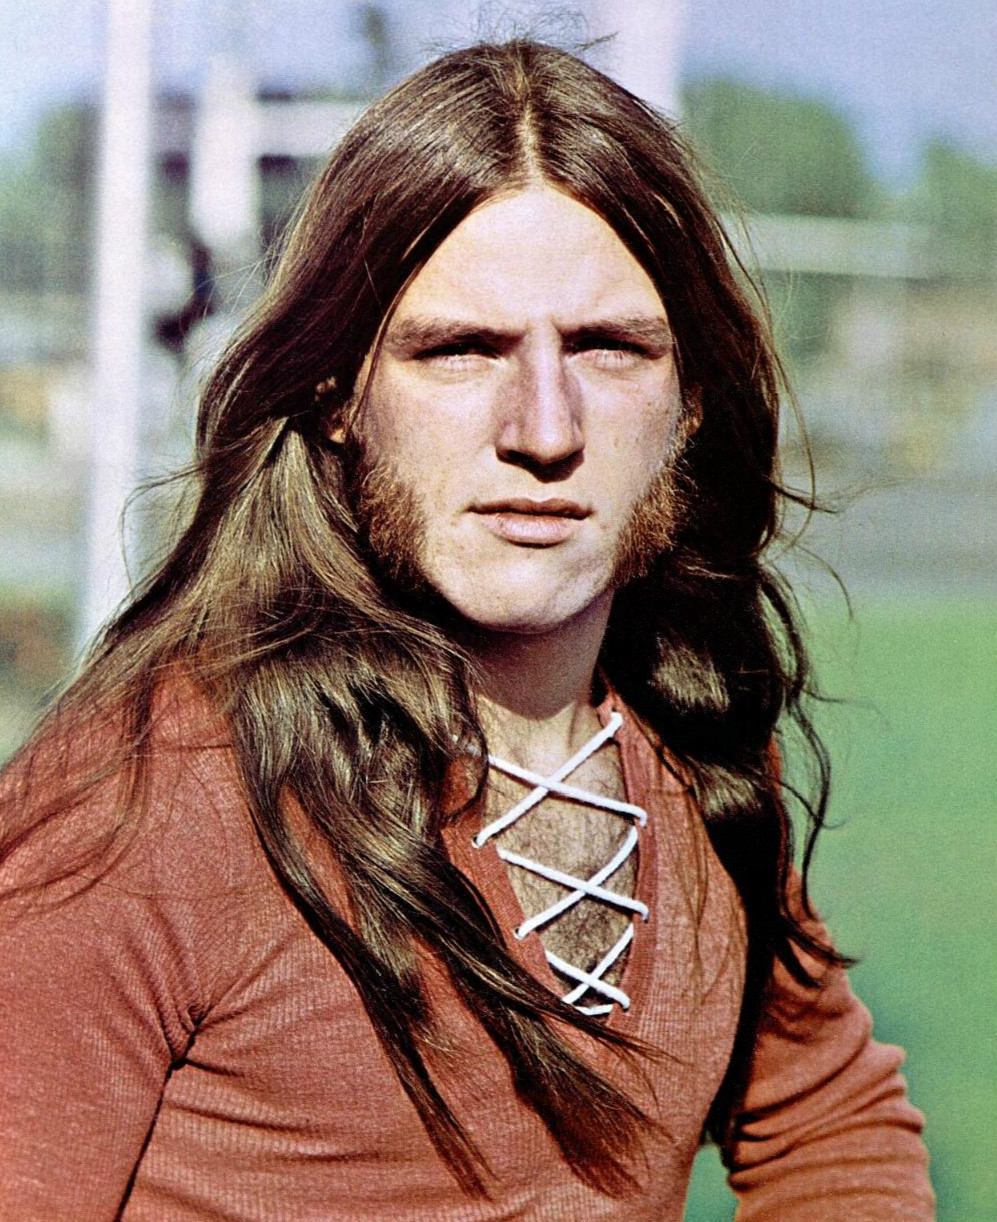 Is Mark Farner Touring With Grand Funk Railroad